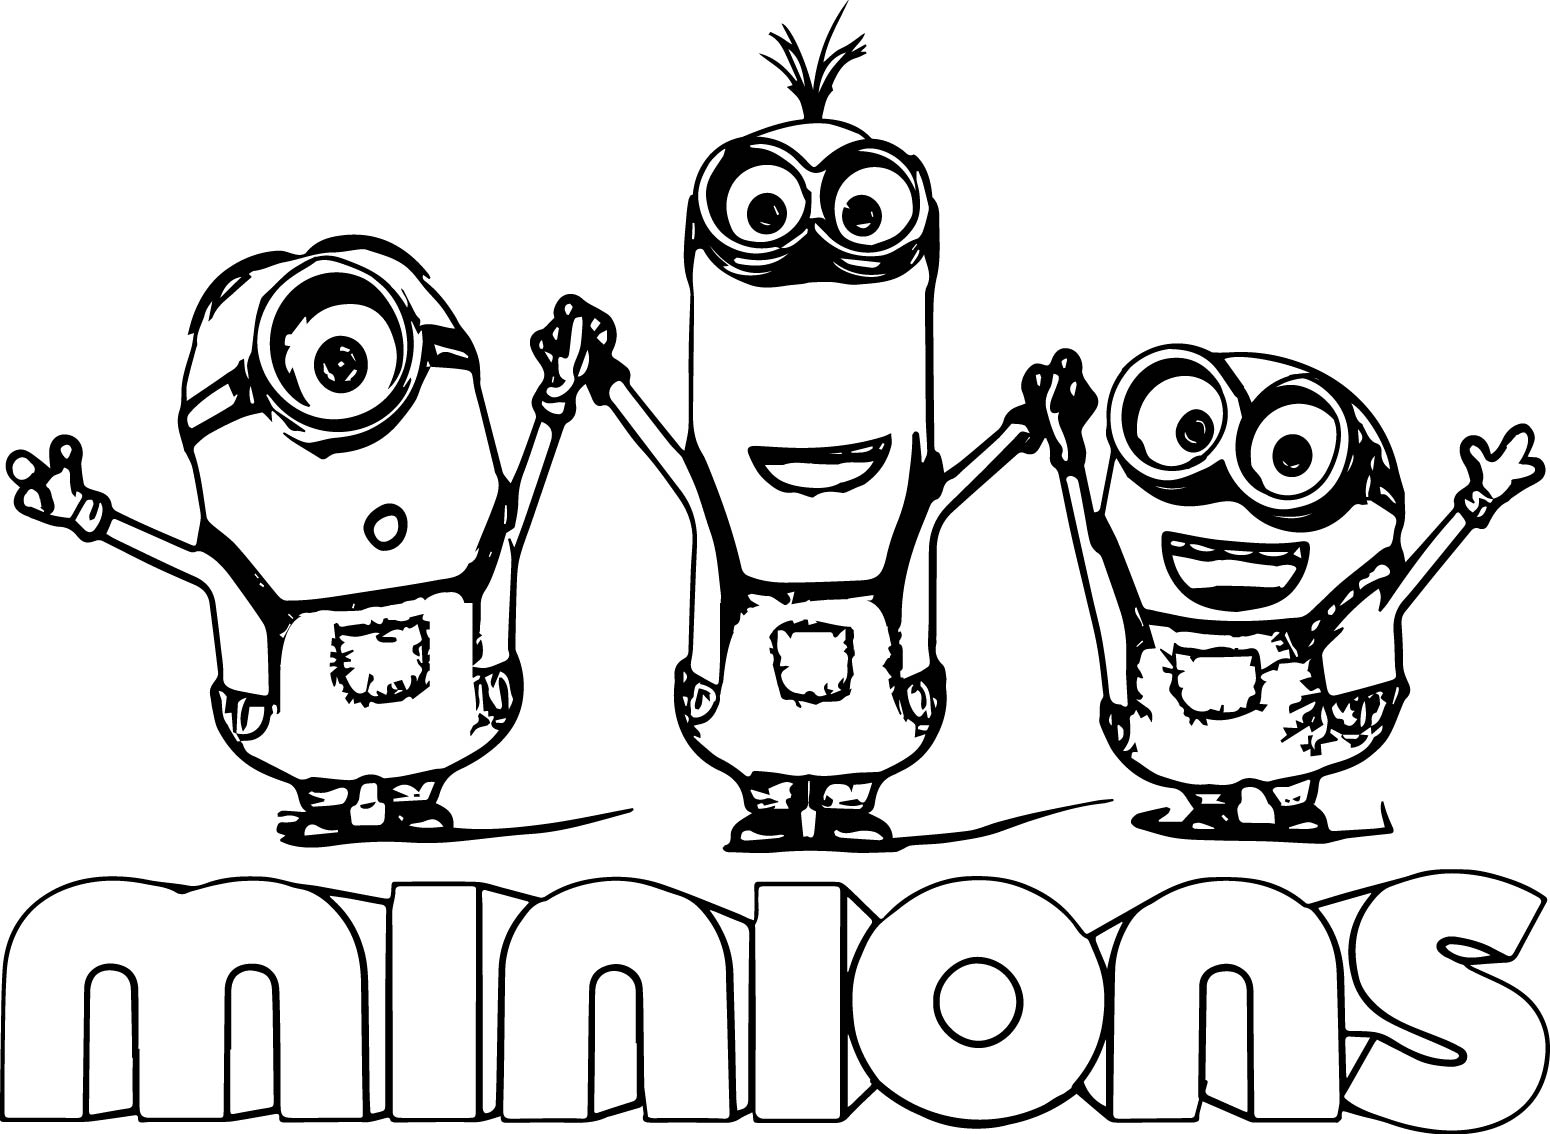 Minion Coloring Pages Minion Text Minions Backyard Bash Coloring Page  Wecoloringpage